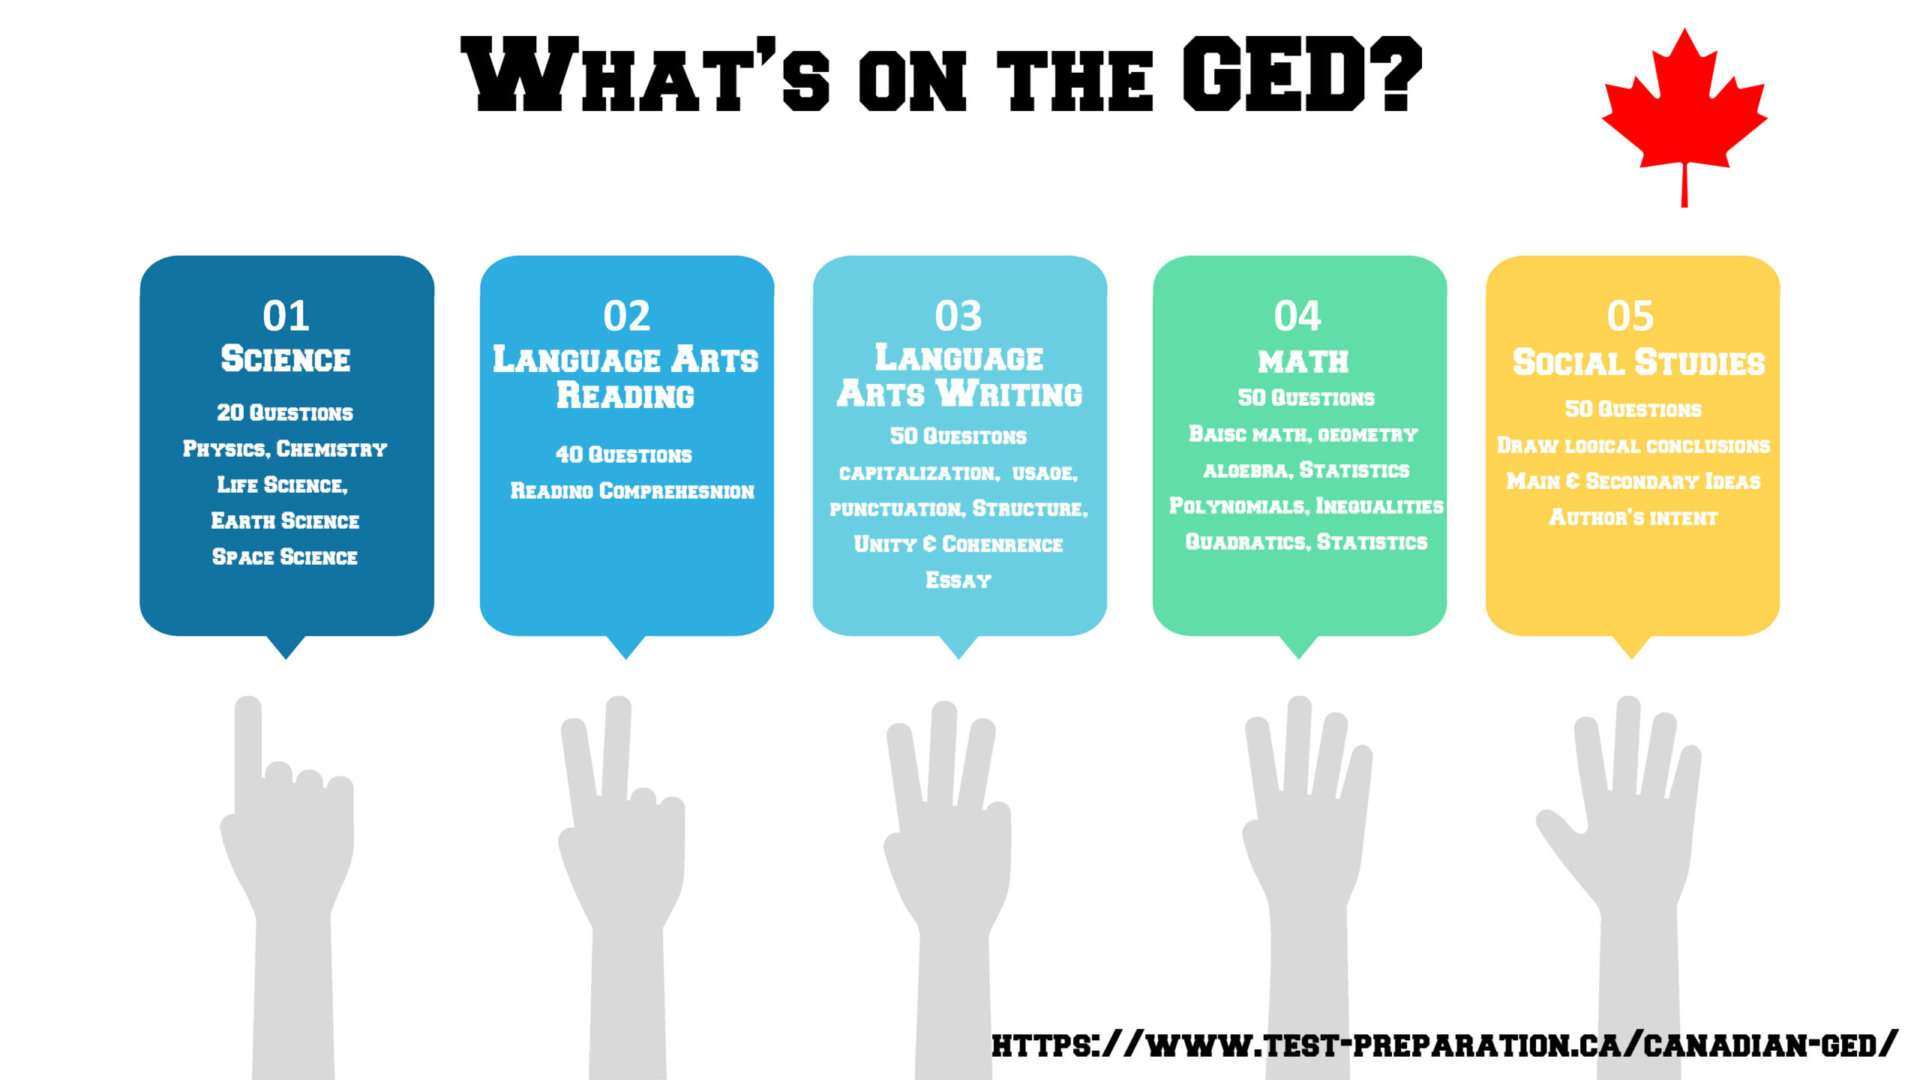 Canadian GED Test Content